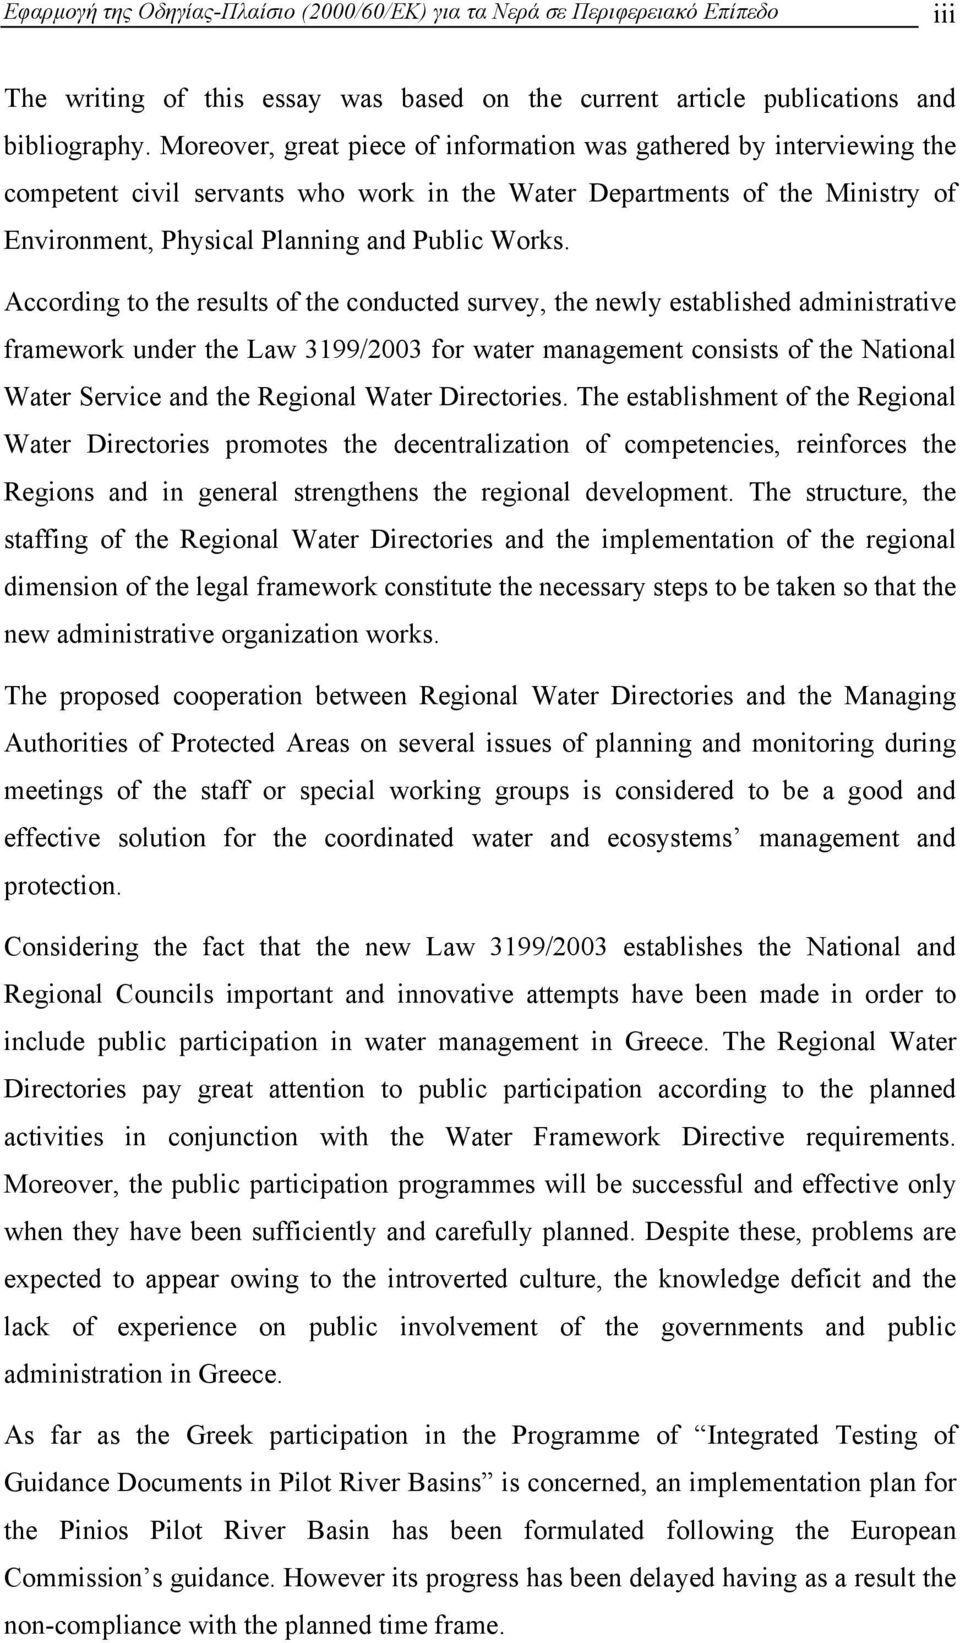 According to the results of the conducted survey, the newly established administrative framework under the Law 3199/2003 for water management consists of the National Water Service and the Regional